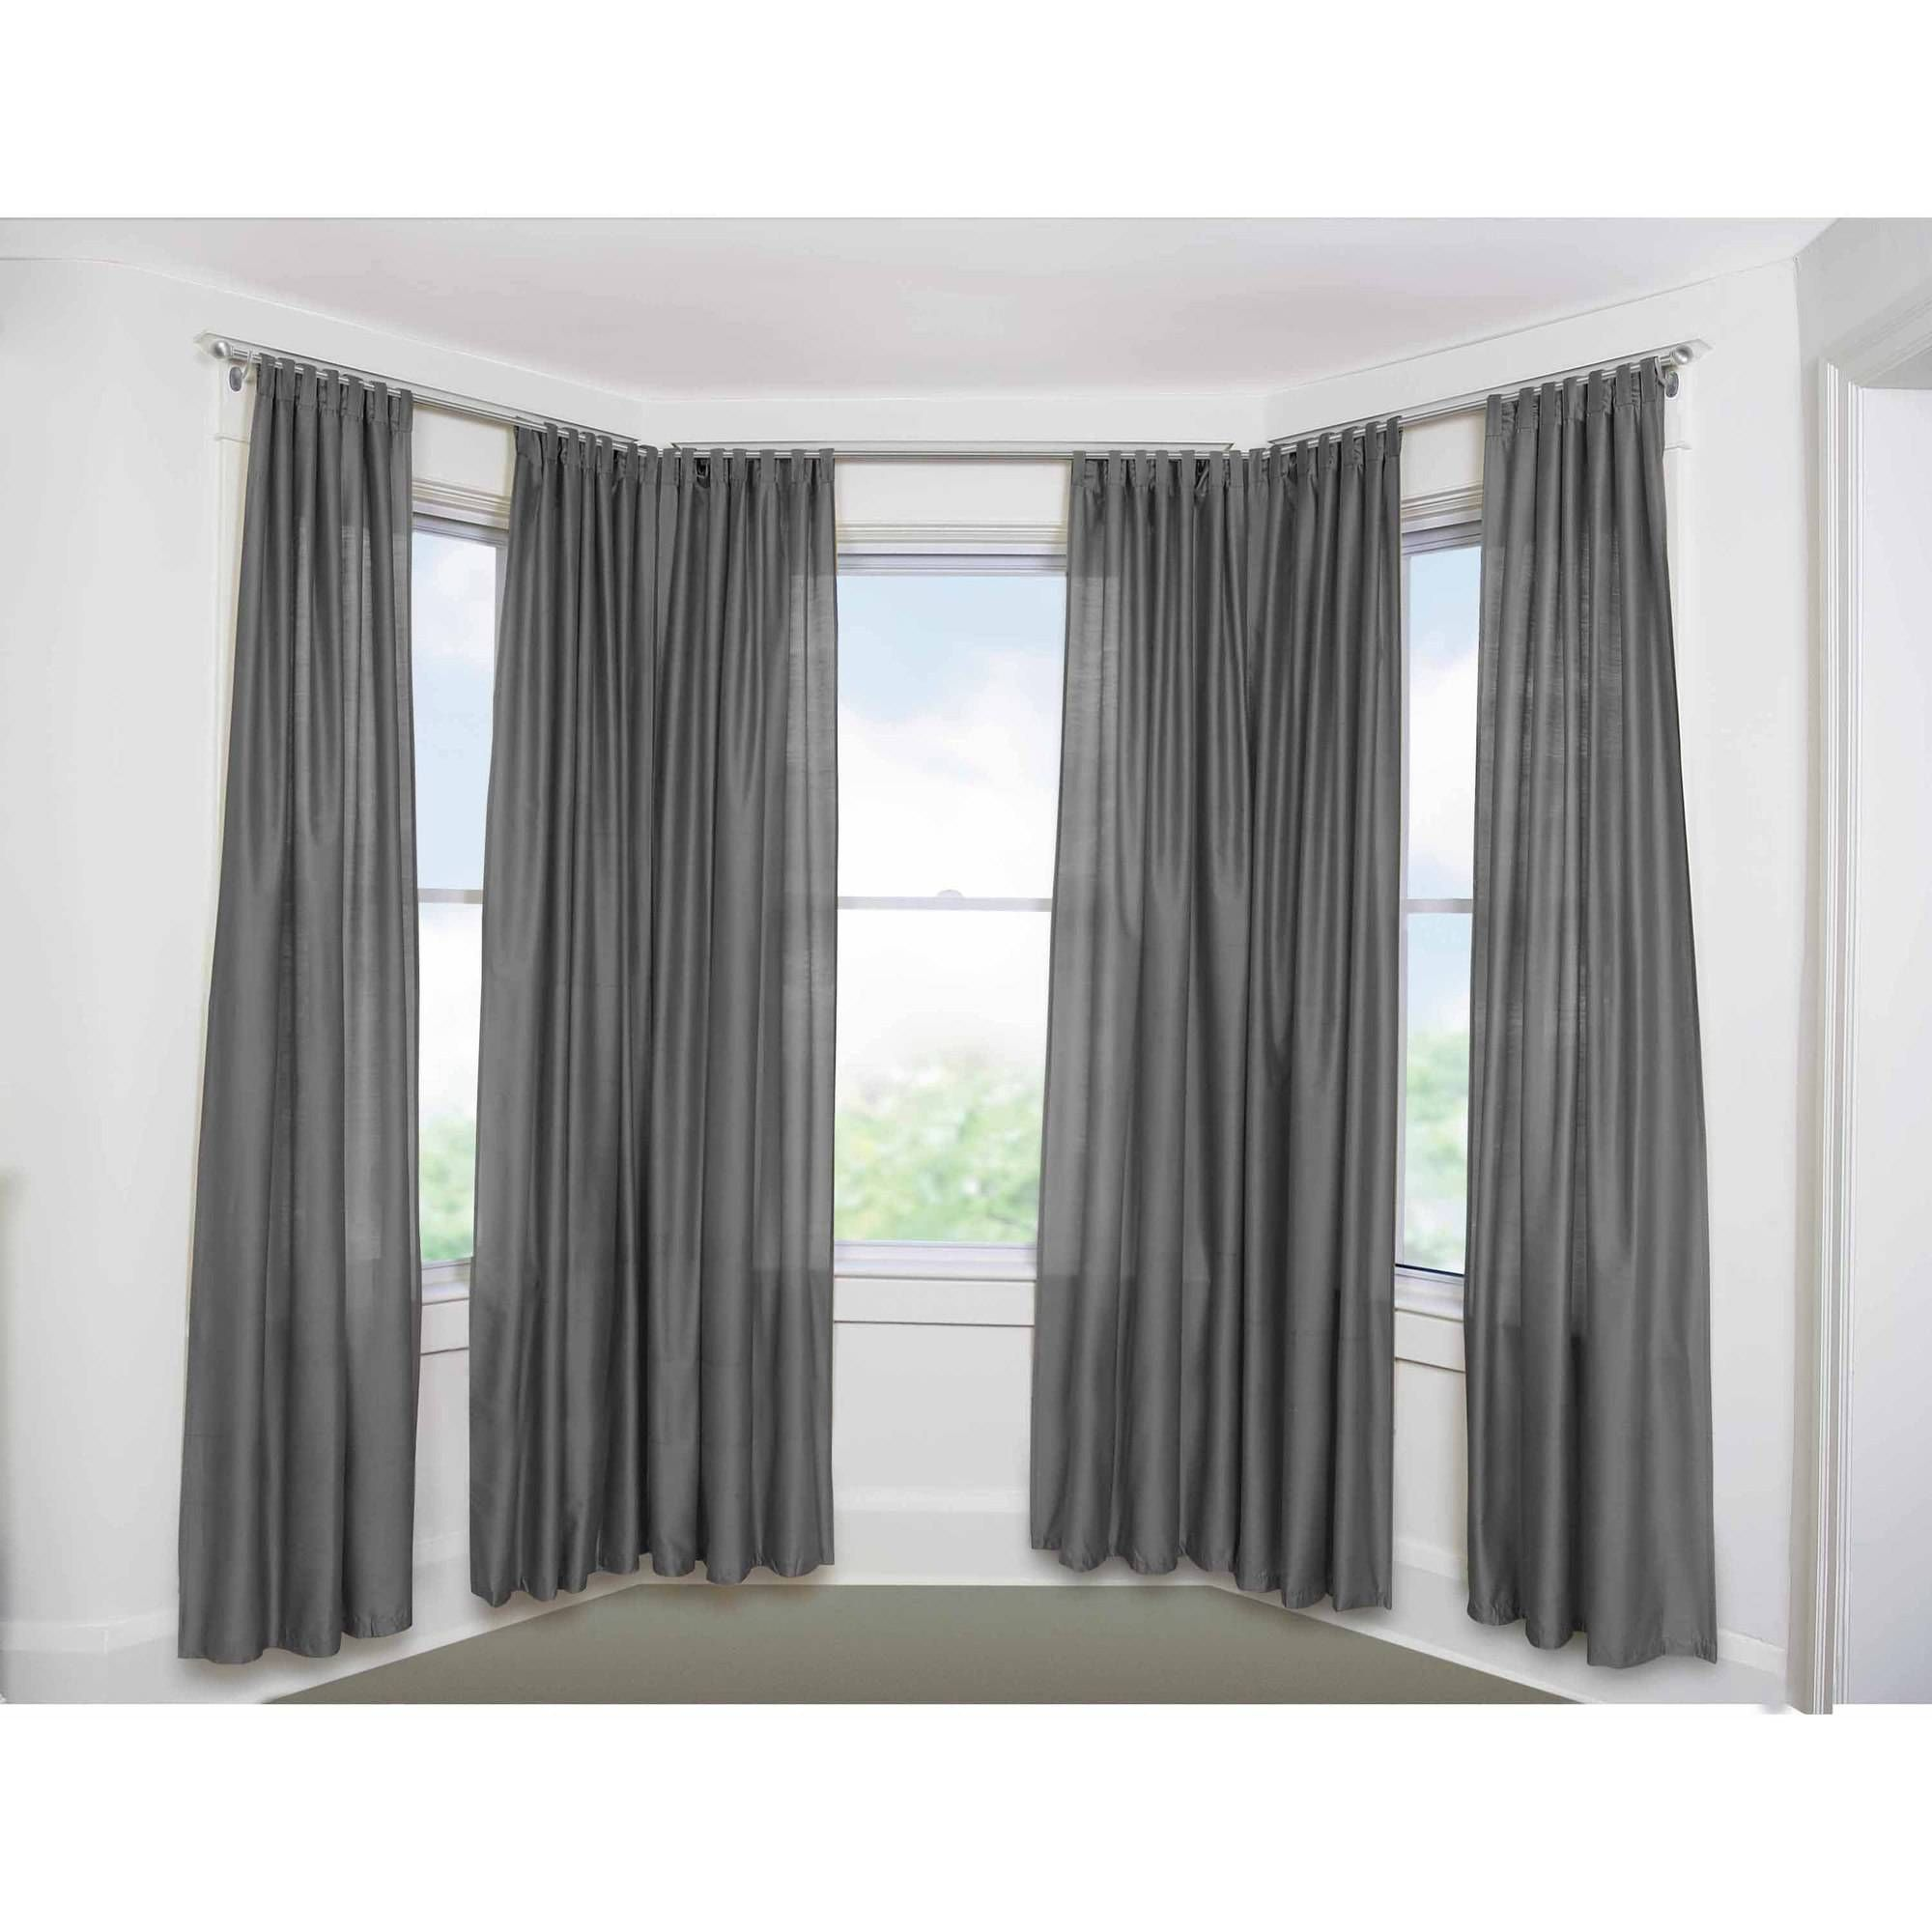 The Most Effective Solutions To Your Bay Window Curtains Bay Window Curtains Bay Window Minimalist Curtains